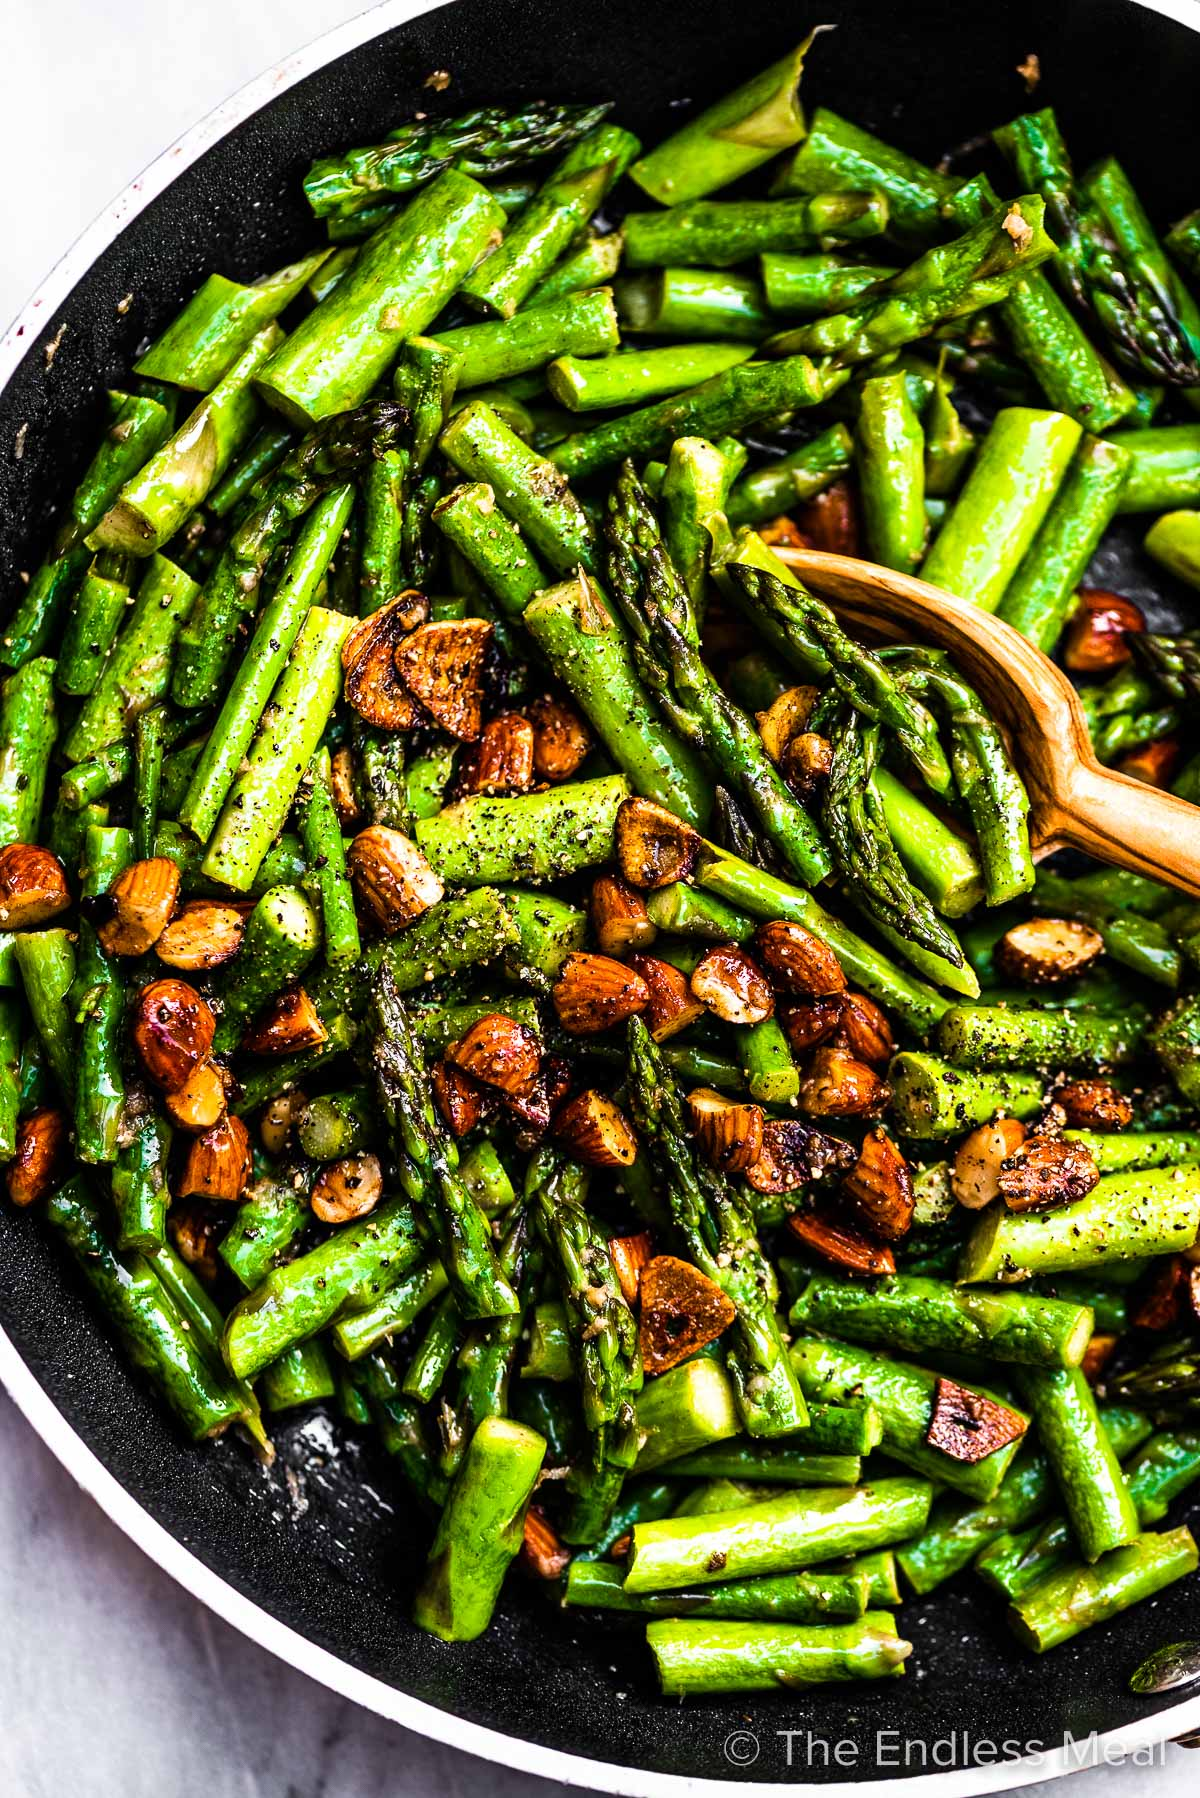 A pan of garlic butter asparagus with a wooden spoon taking a scoop.